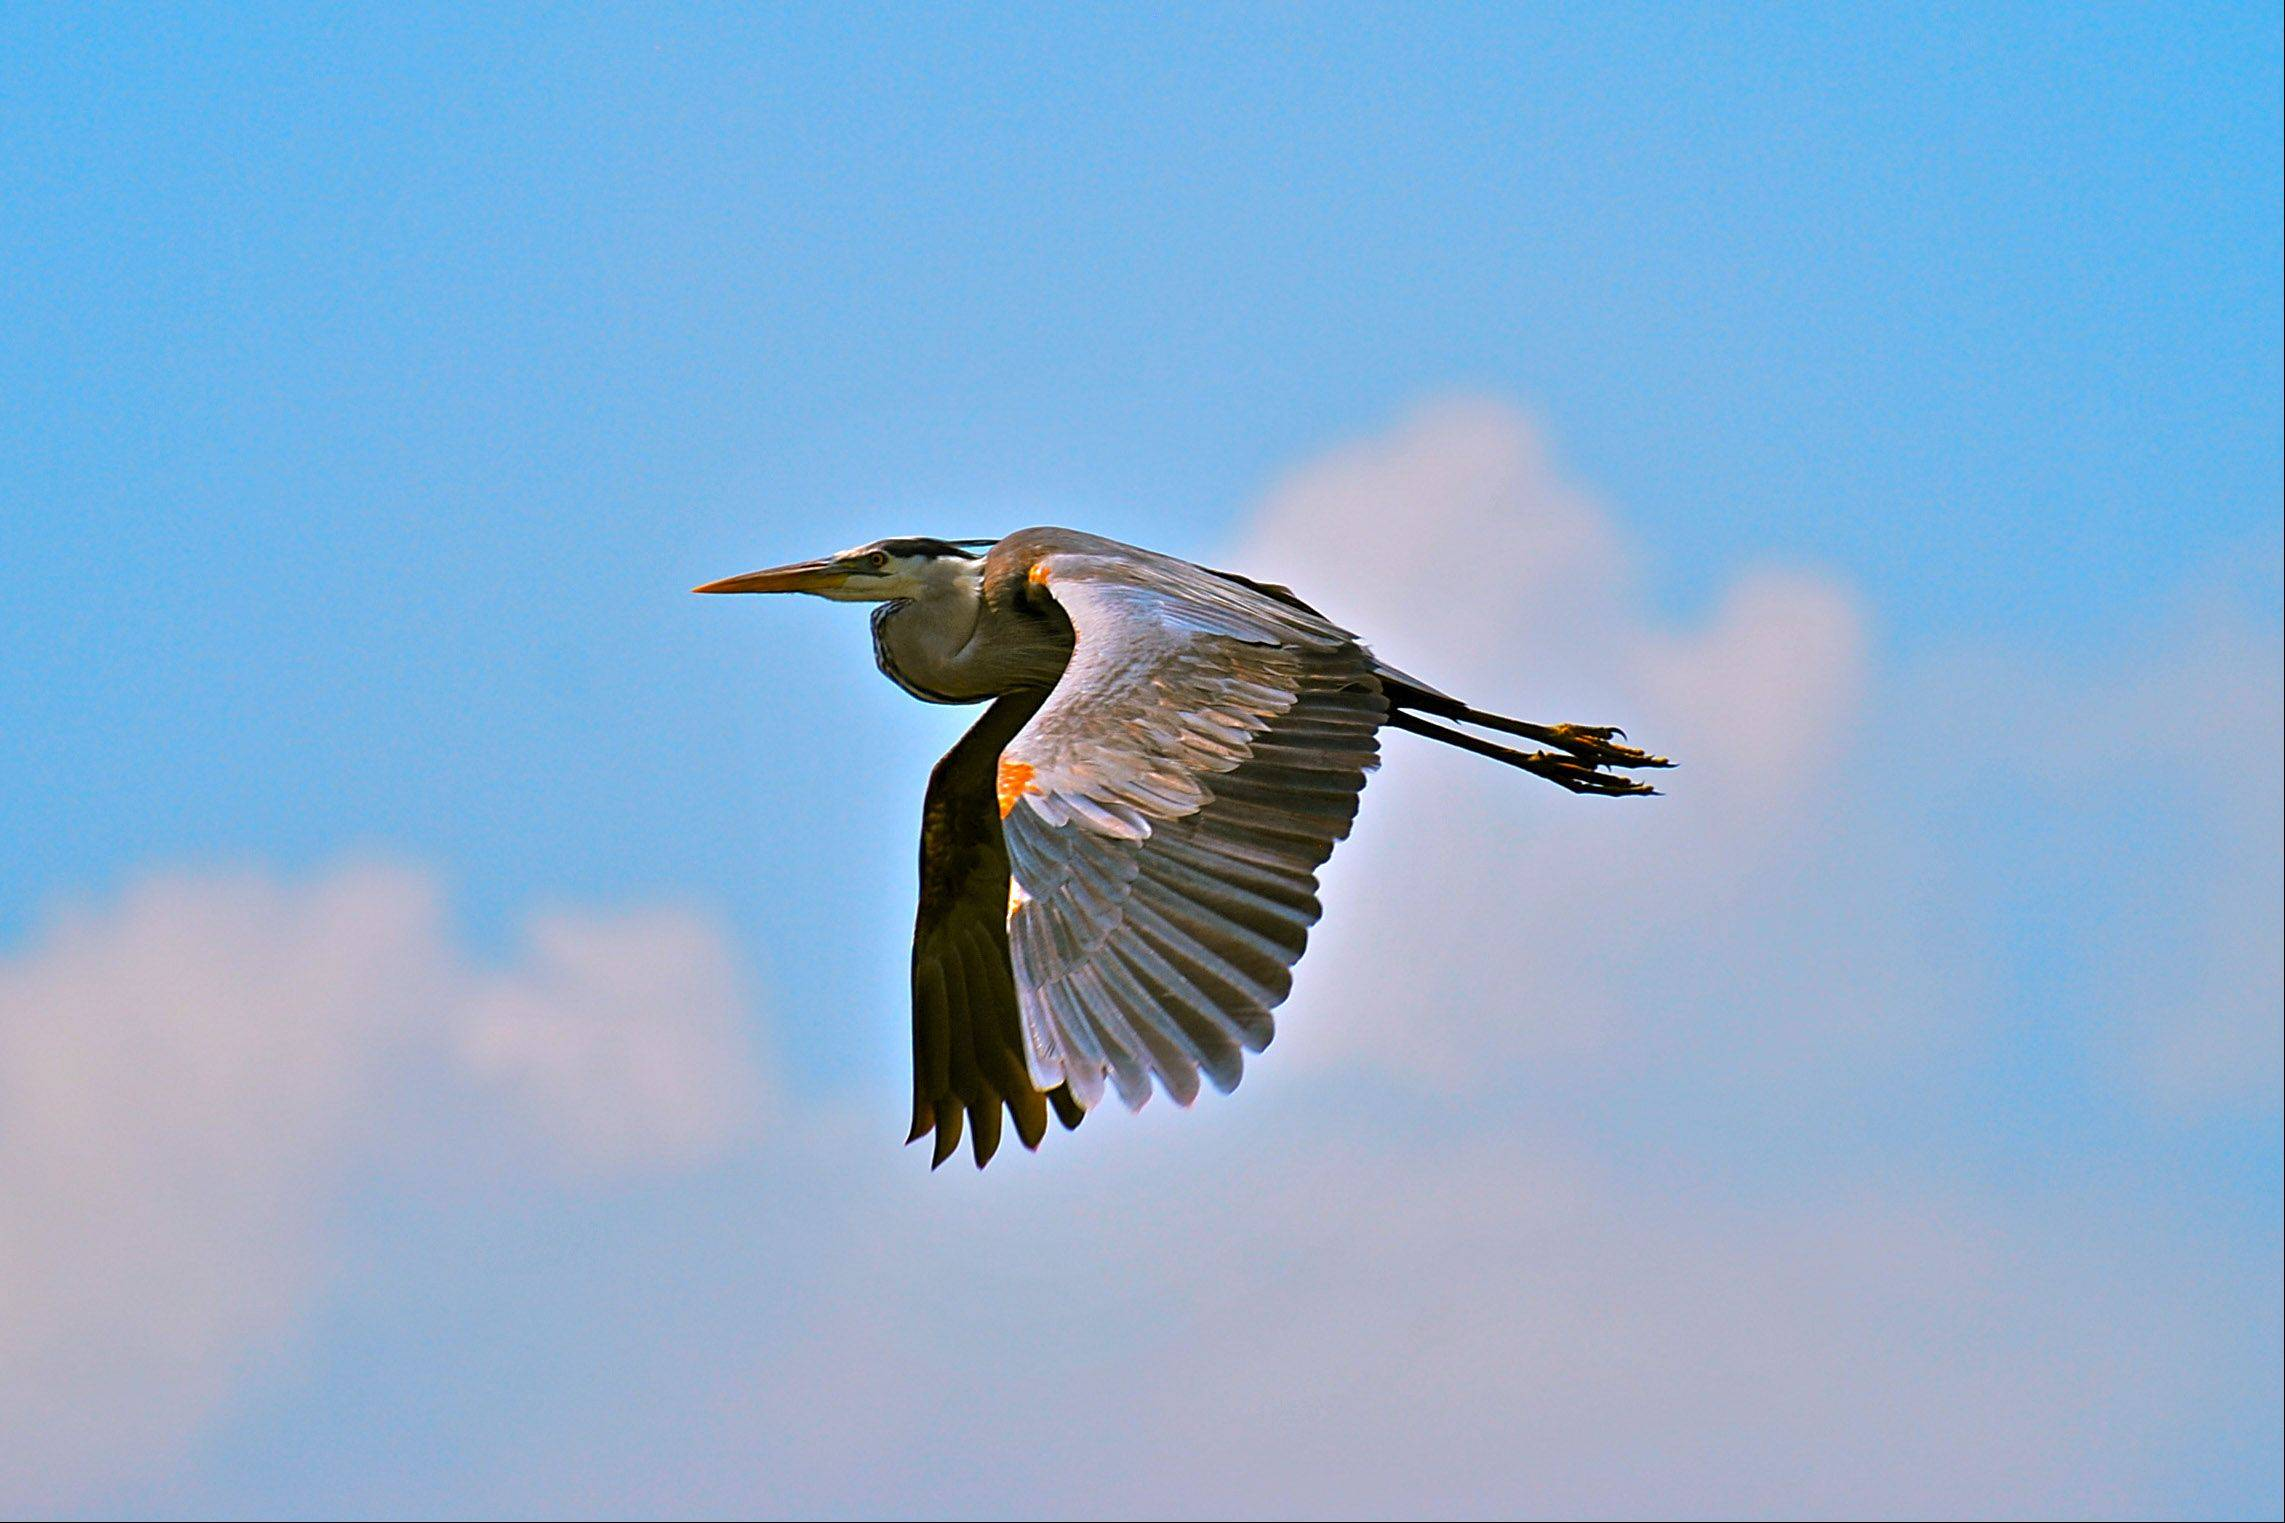 I took the picture of this heron in flight while at the Sabin National Wildlife Refuge on the gulf coast of Louisiana in April of 2010. The following week the disastrous platform fire and oil spill started. I hope these animals all survived.